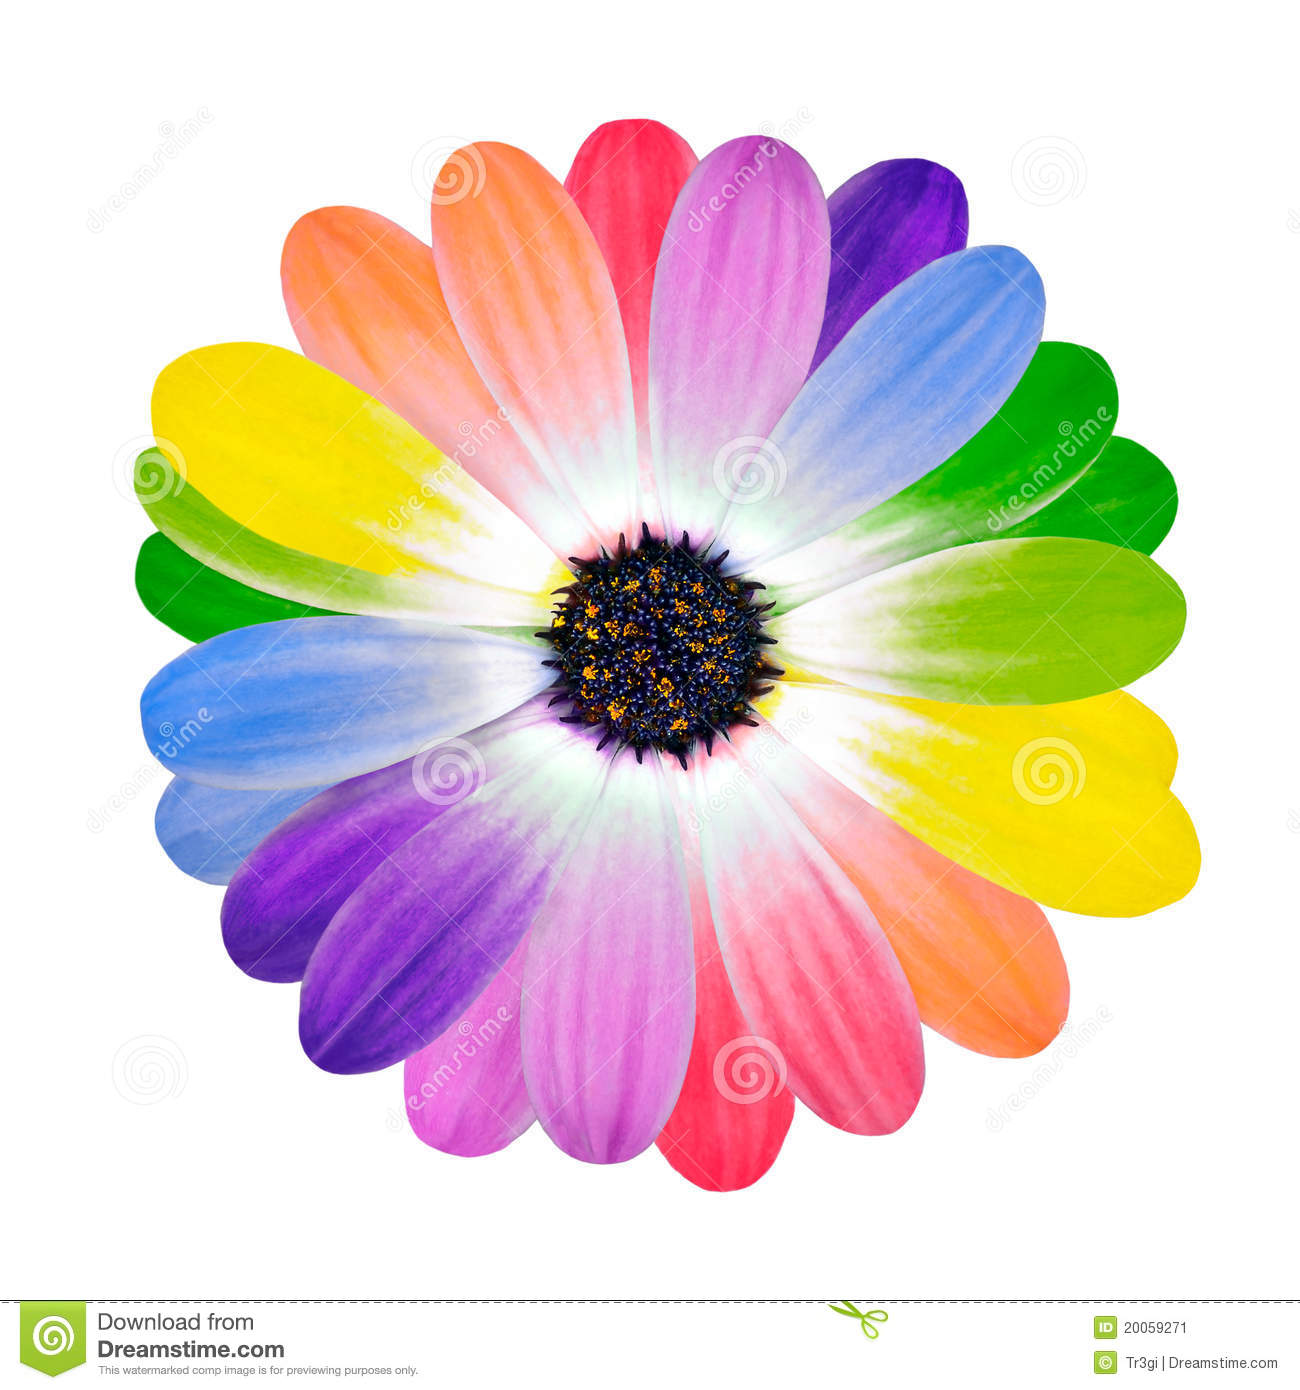 rainbow multi colored petals of daisy flower stock image  image, Beautiful flower